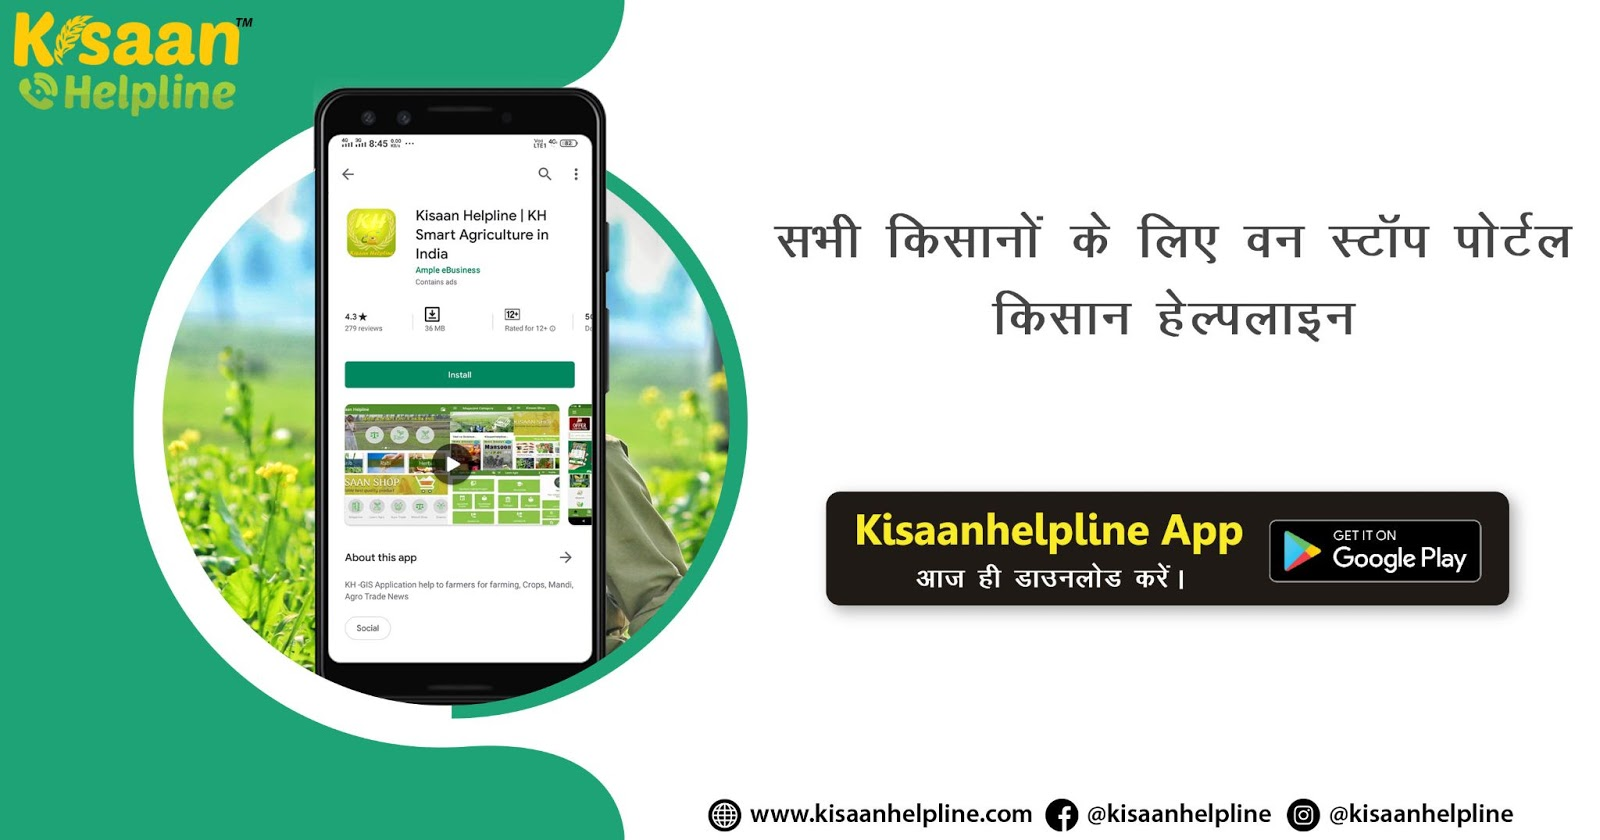 Know about the Kisaan Helpline